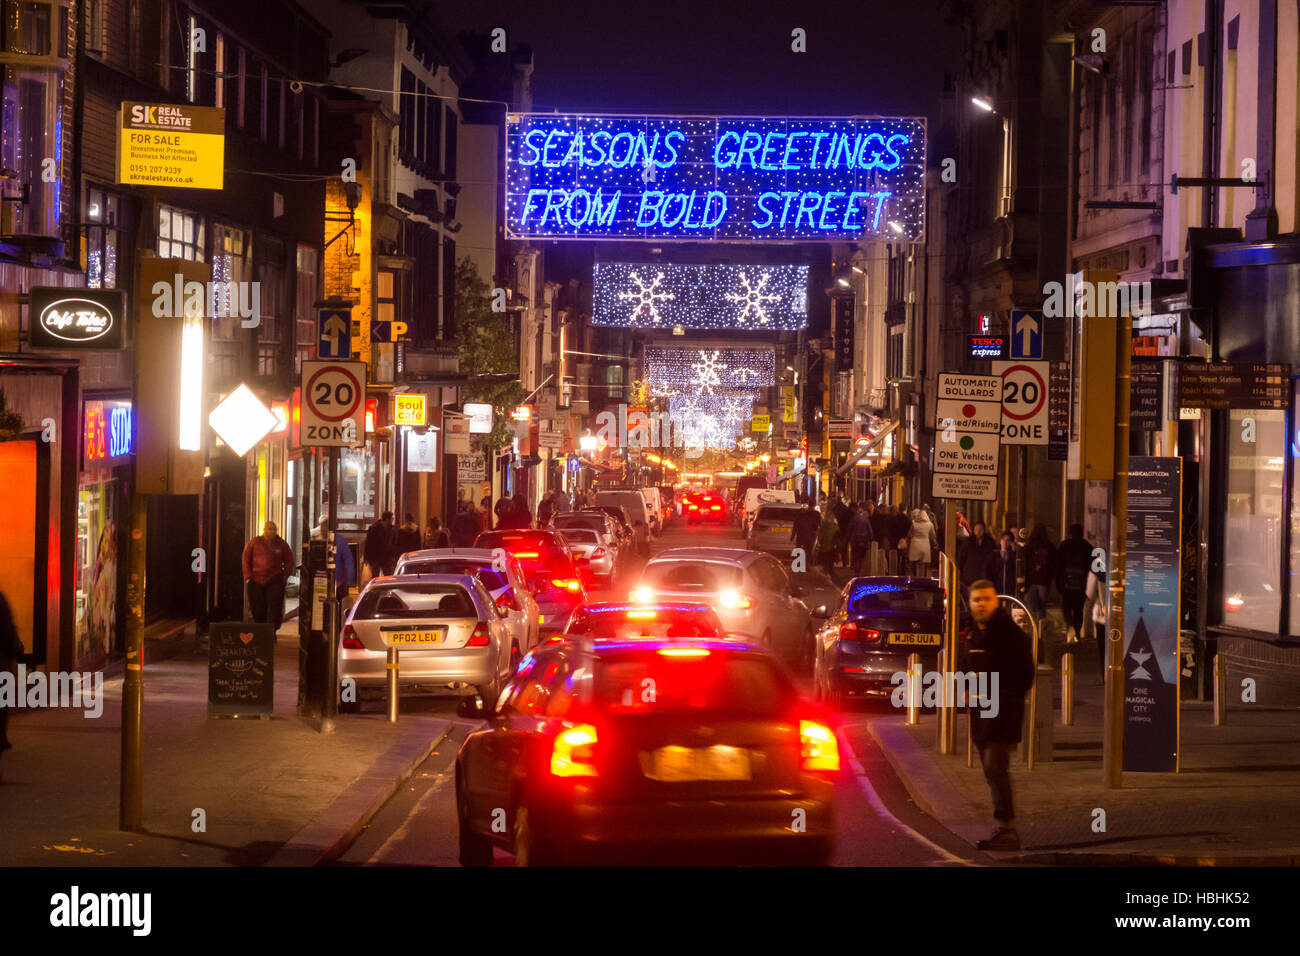 Bold Street, a vibrant multicultural area in Liverpool at night. - Stock Image